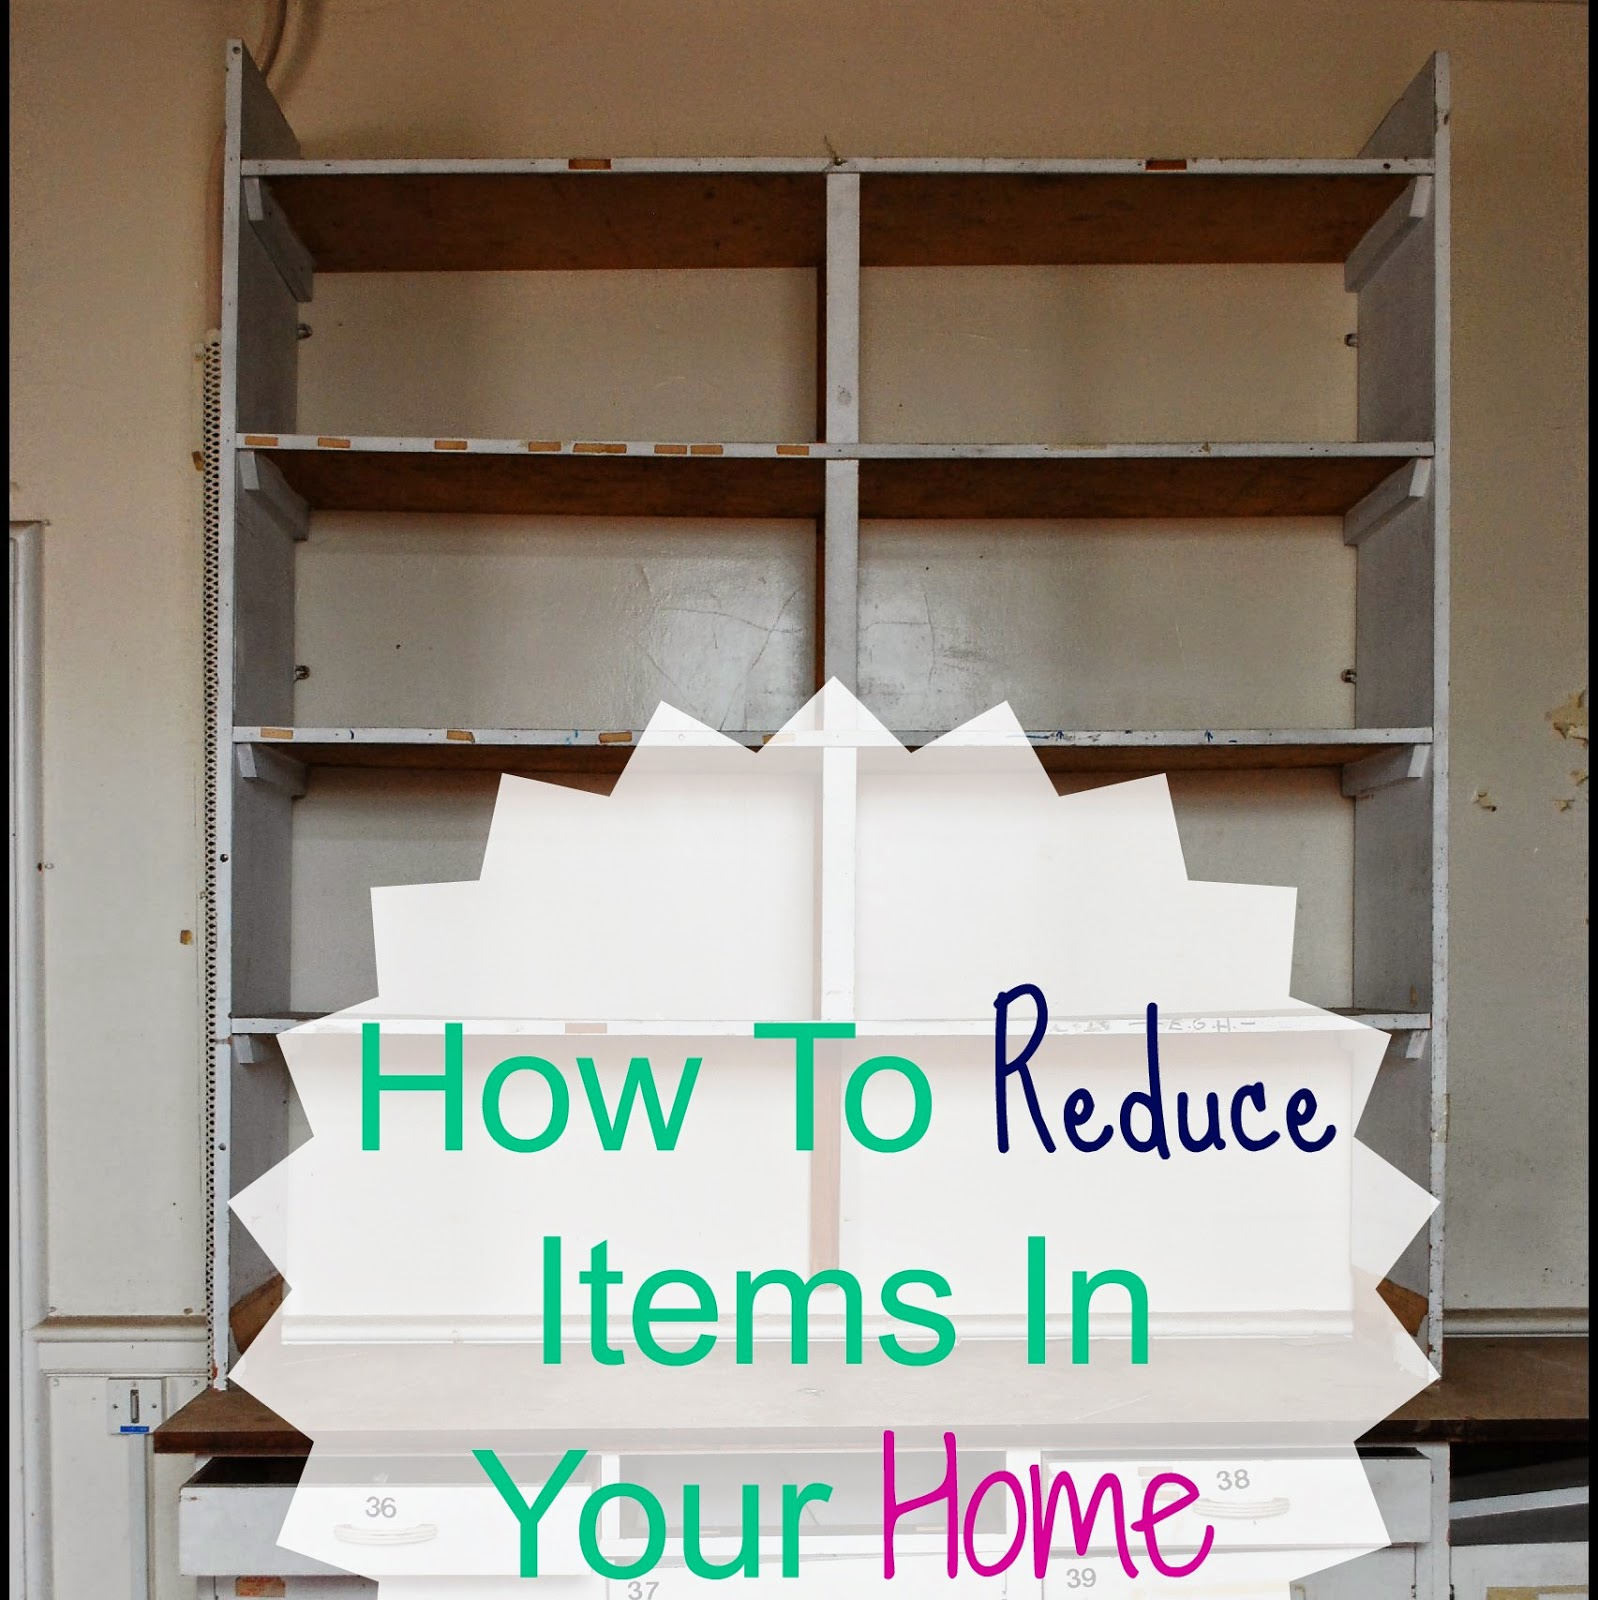 How To Reduce Items In Your Home